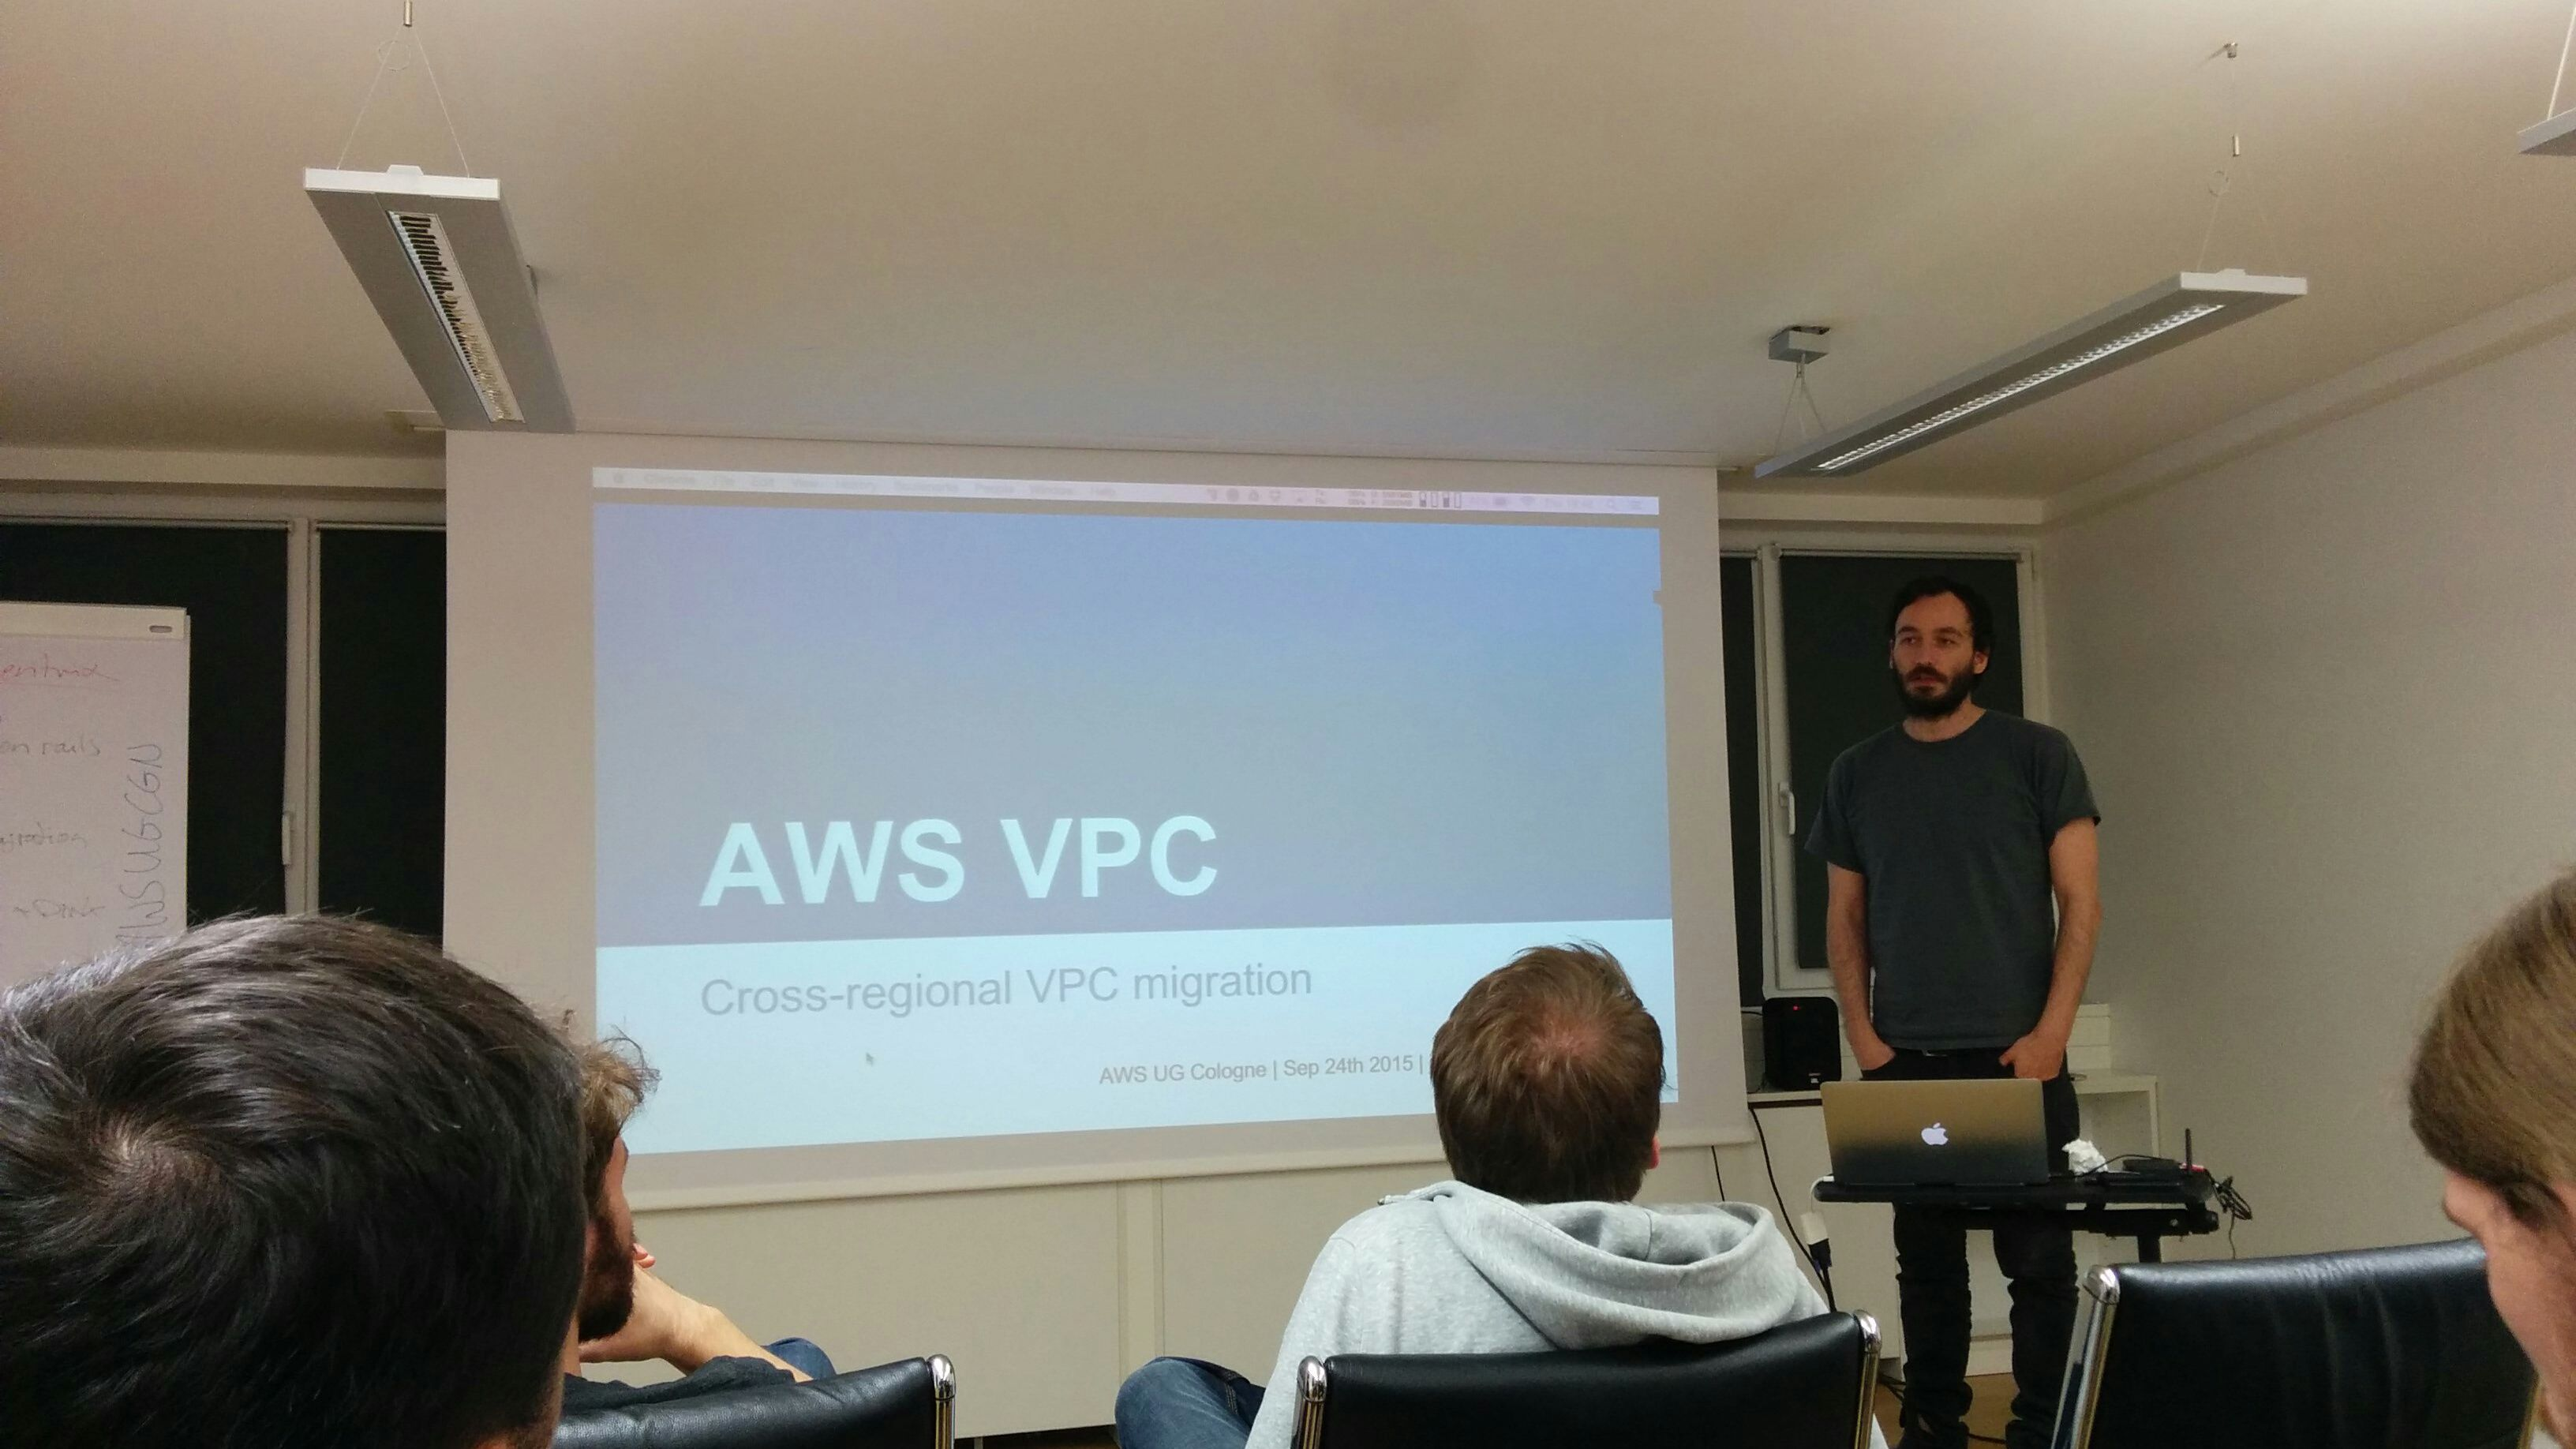 Cologne AWS User Group #AWSUGCGN